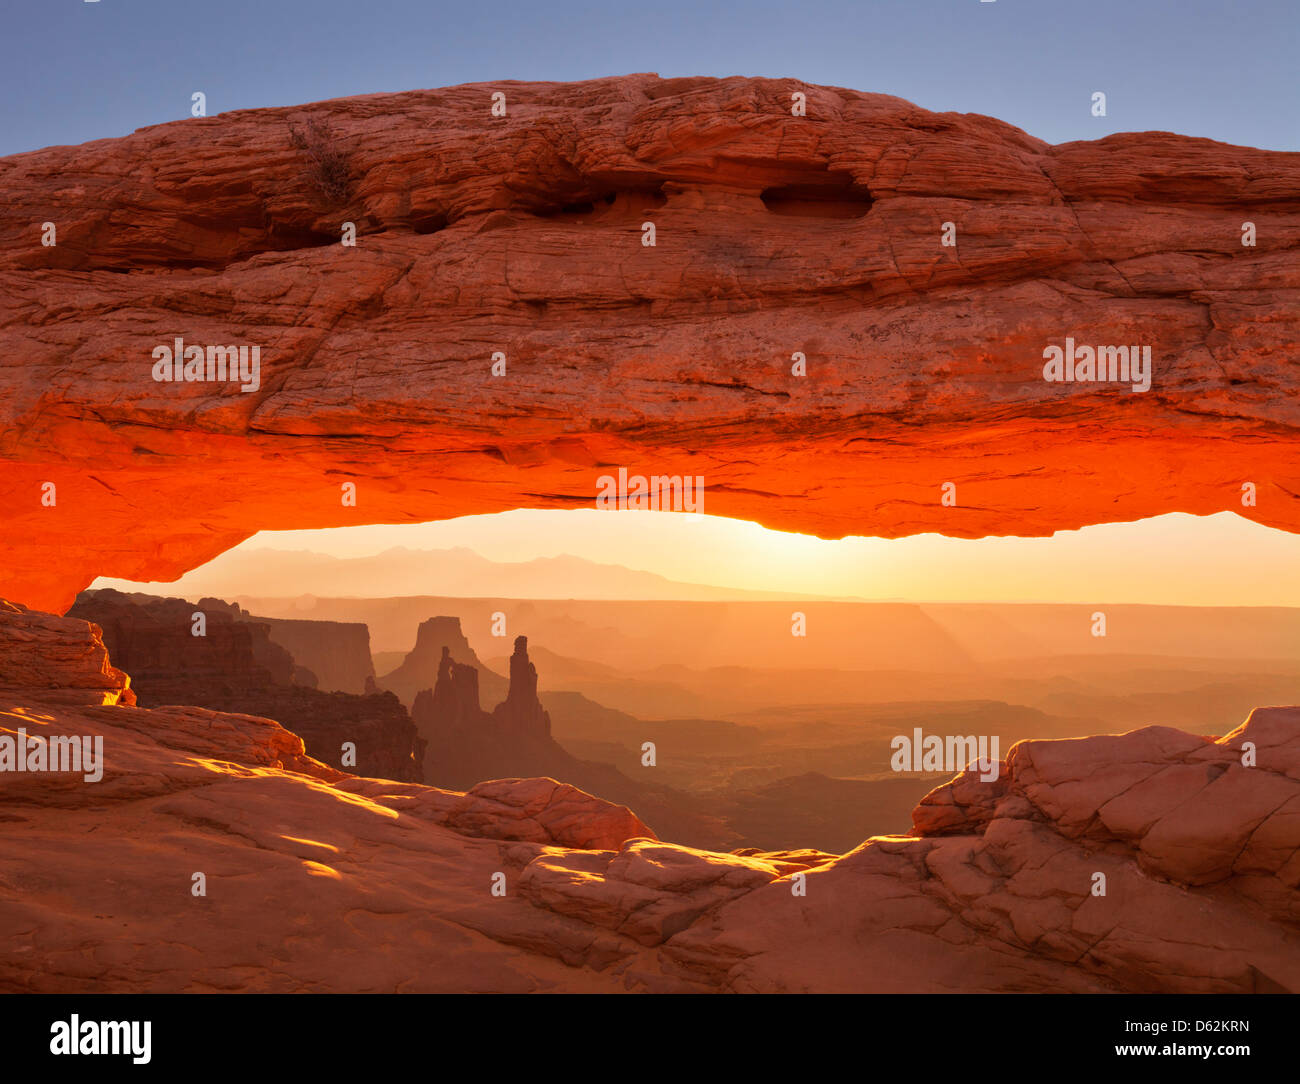 Sunrise over La Sal Mountains, Washer Woman Arch, and Mesa Arch, Island in the Sky, Canyonlands National Park, Utah - Stock Image